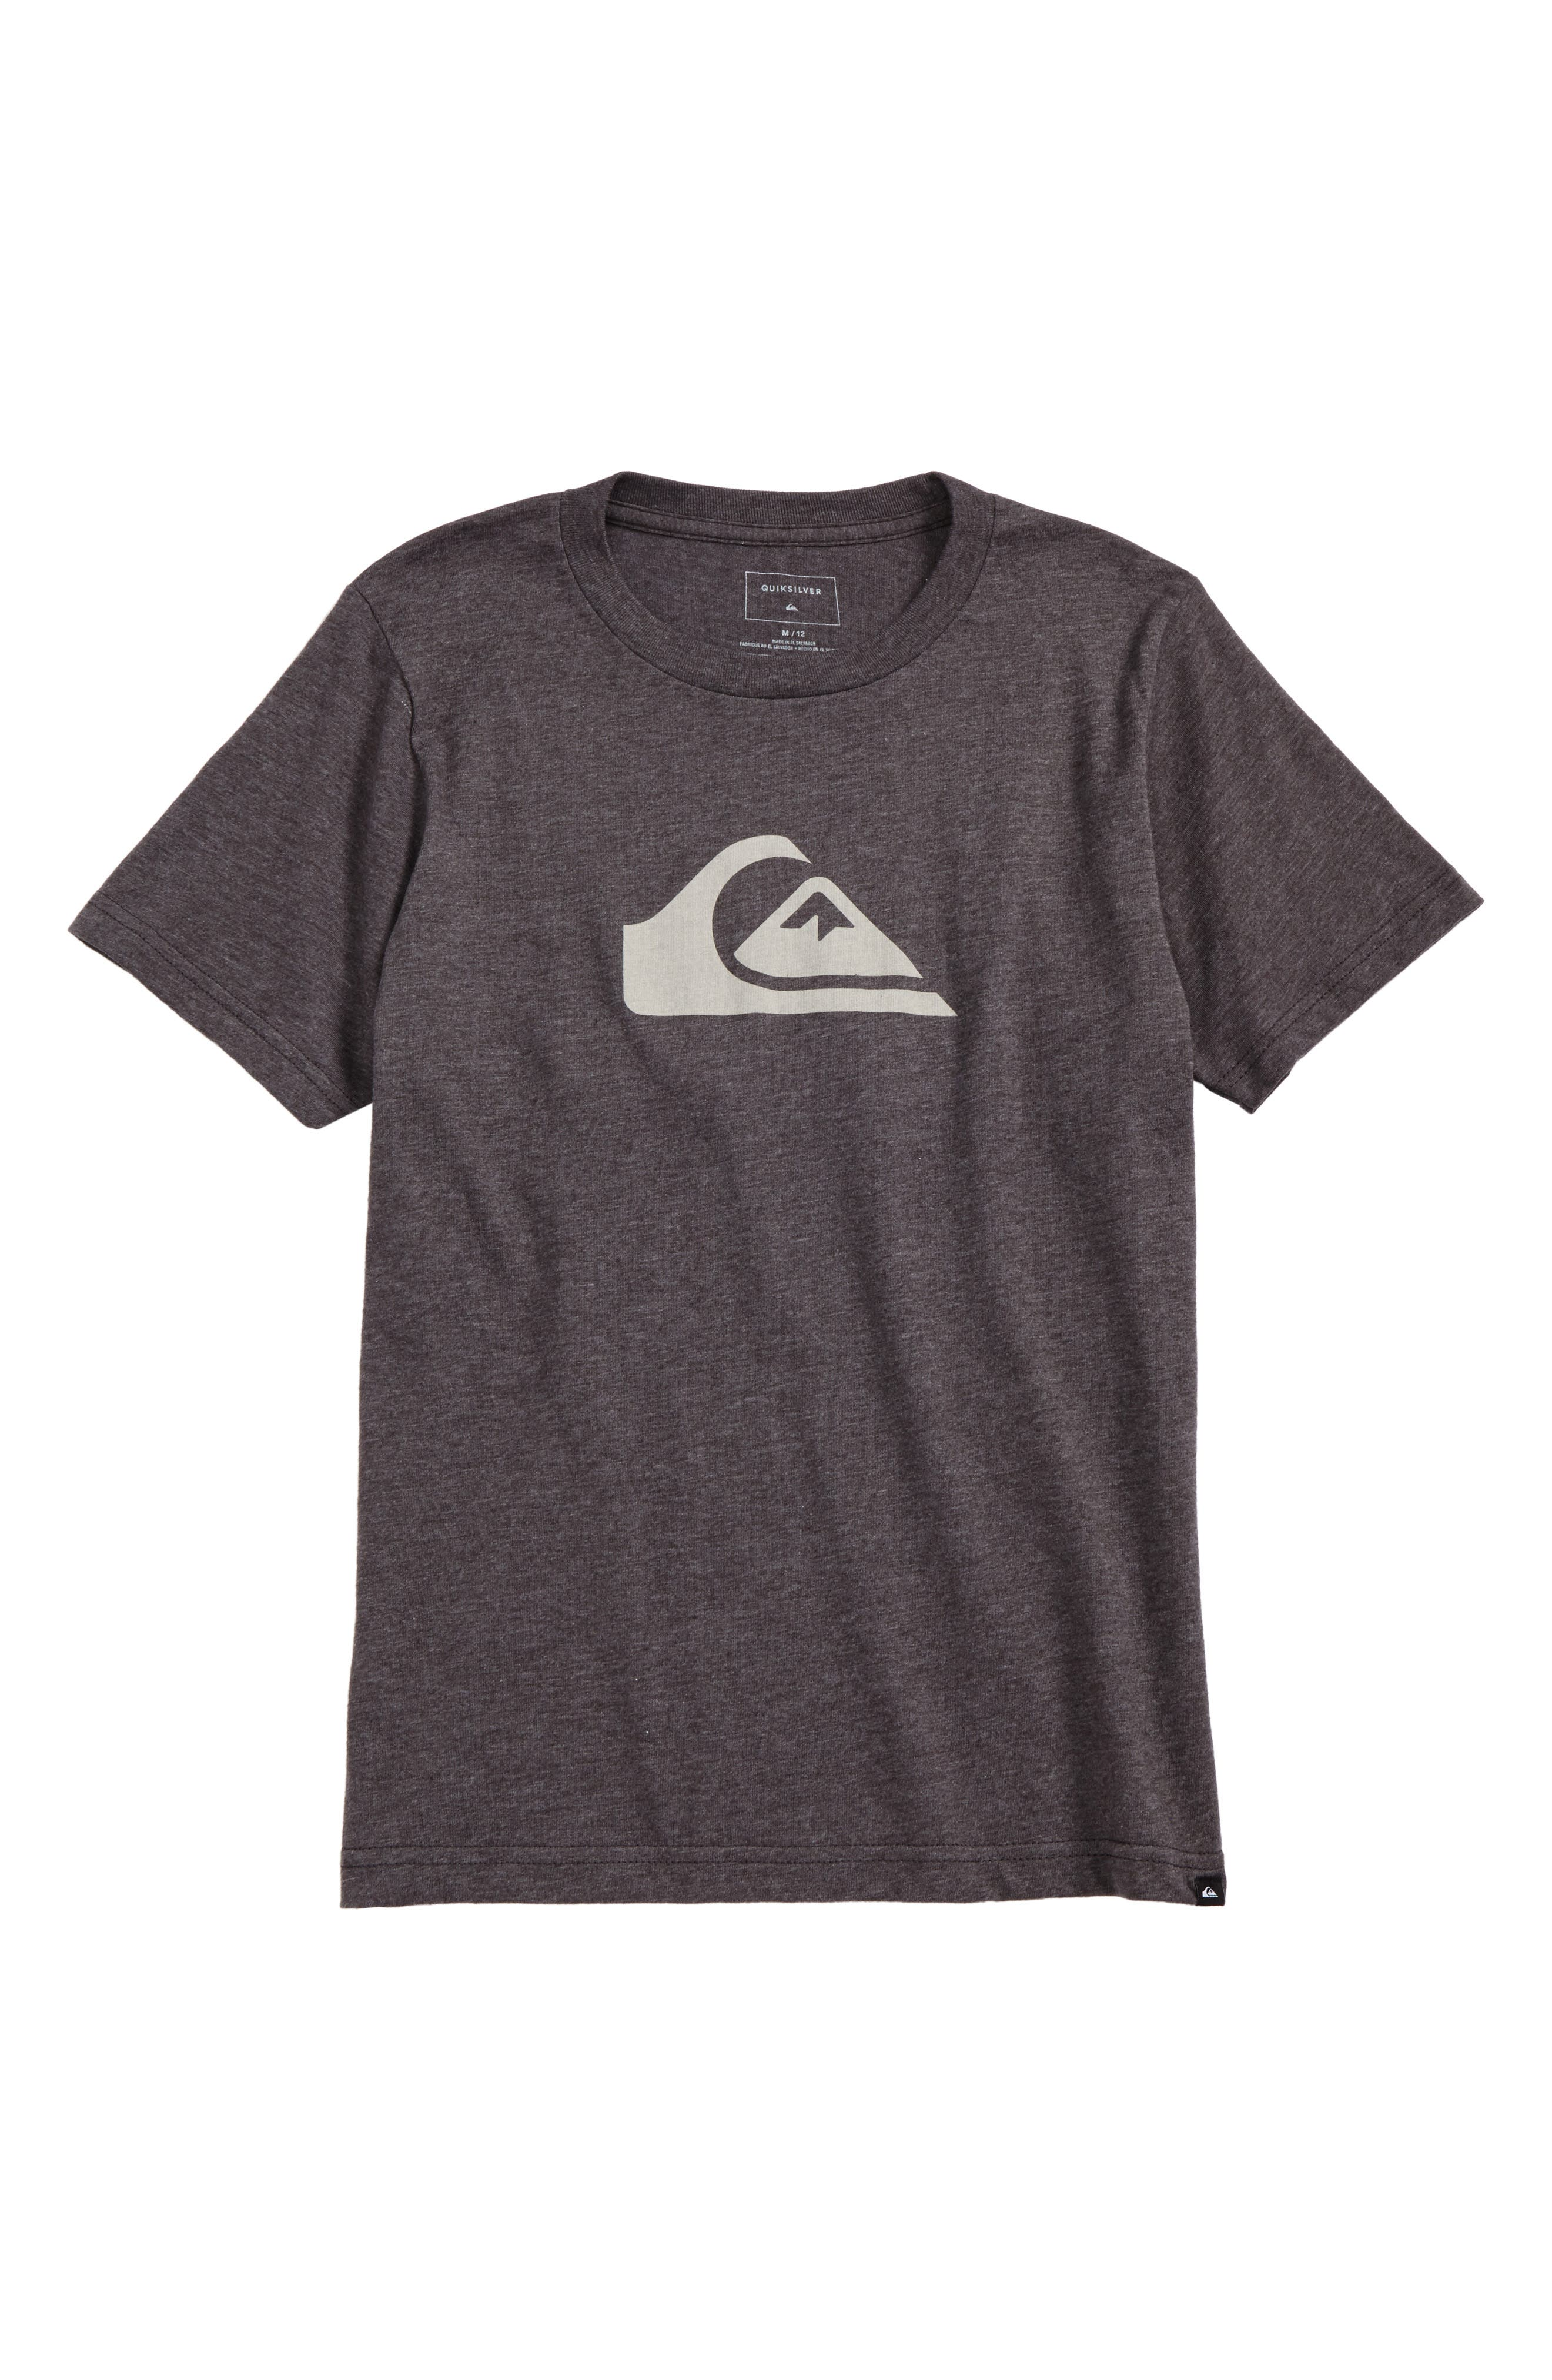 Quiksilver Logo Graphic T-Shirt (Big Boys)